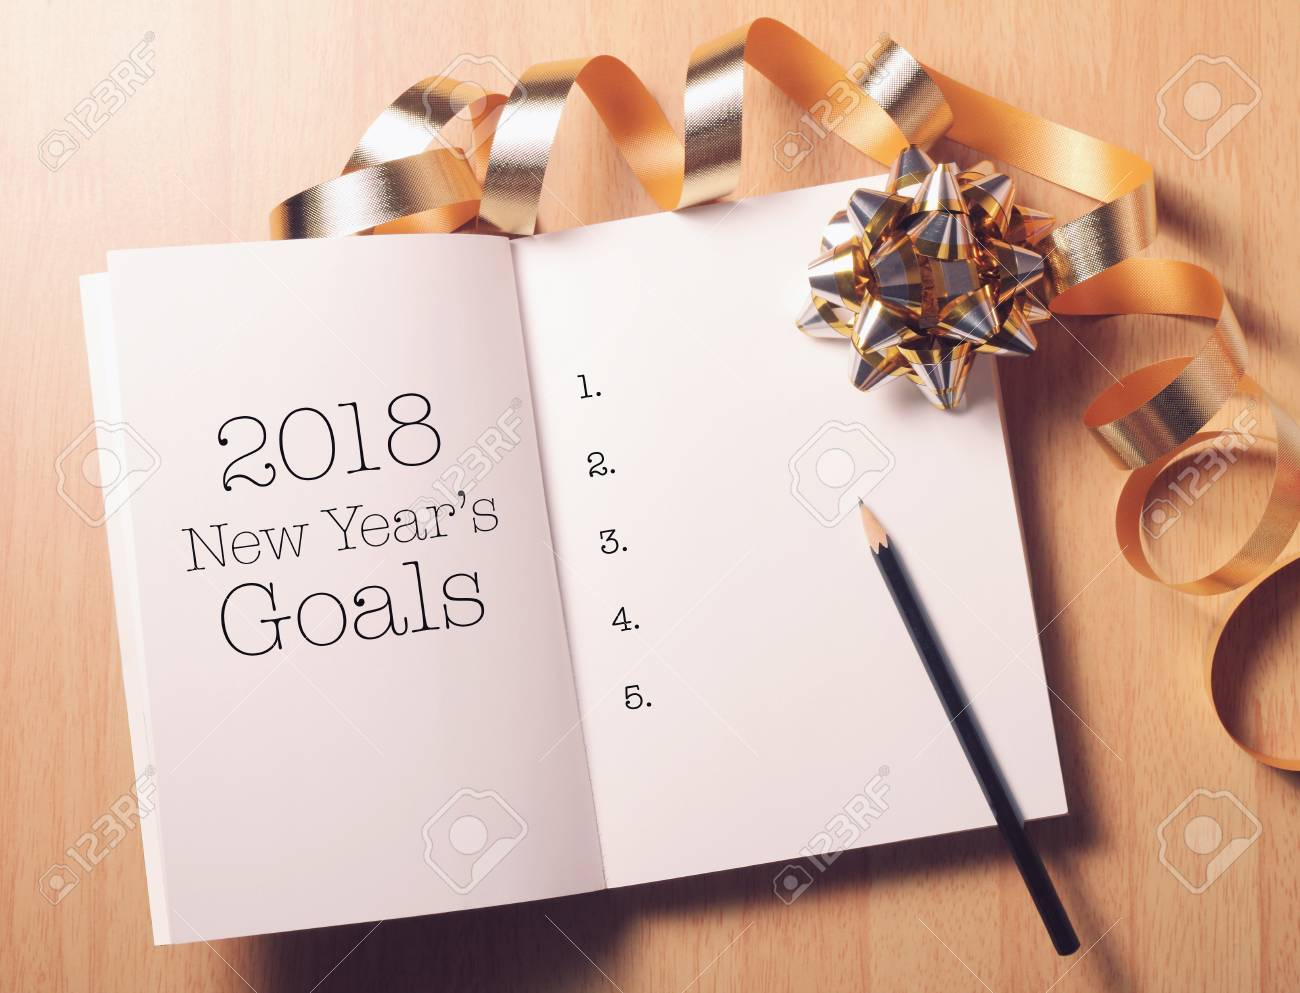 Goals 2018 list with decoration.Discover how setting goals can bring more happiness in your life. - 91428562